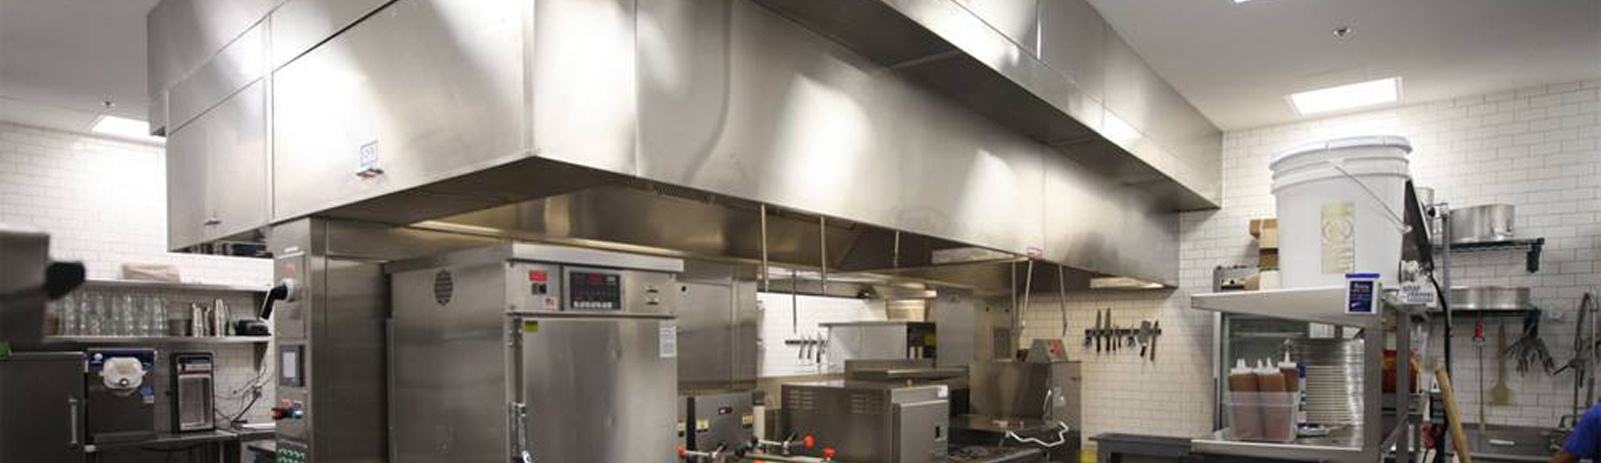 Restaurant Hoods & Exhaust Hood Systems for Commercial Kitchens